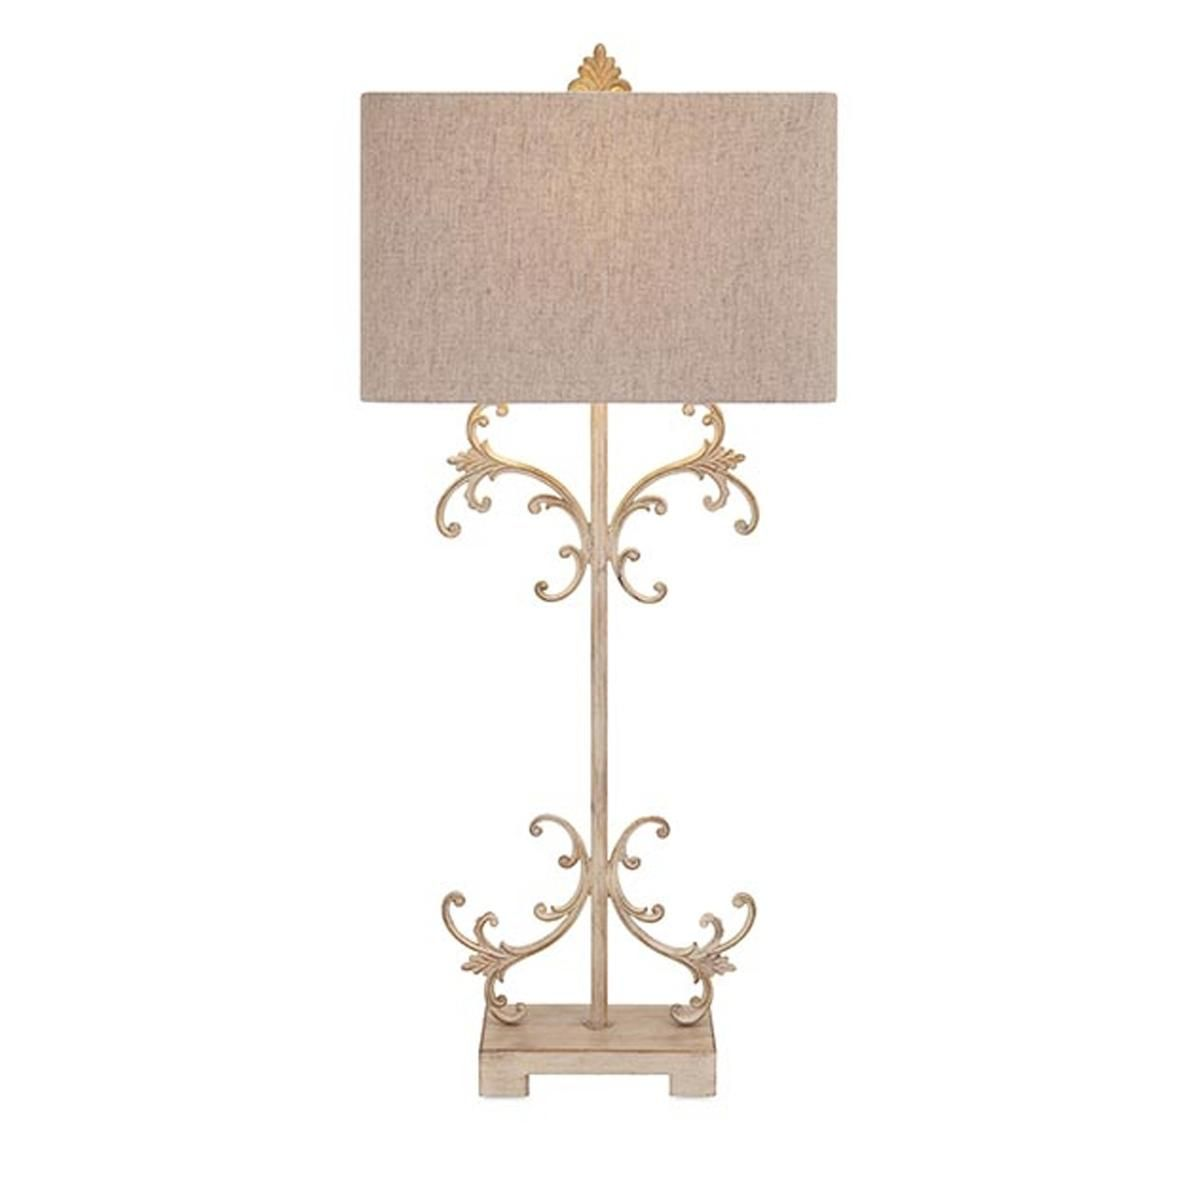 Scrolled French Country Table Lamp This Delicately Realized Table